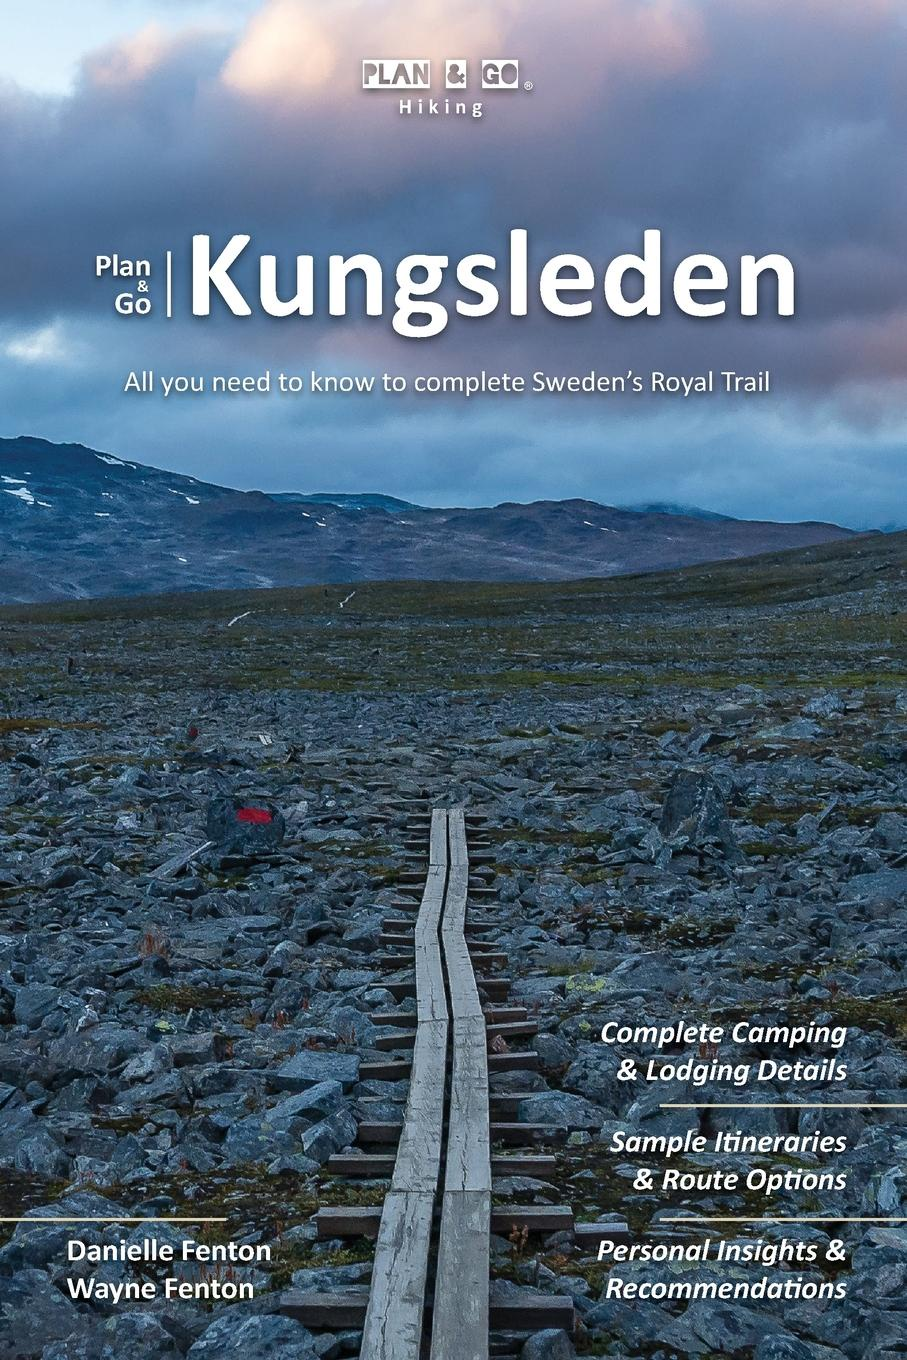 Danielle Fenton, Wayne Fenton Plan & Go . Kungsleden. All you need to know to complete Sweden's Royal Trail and you will know us by the trail of dead and you will know us by the trail of dead worlds apart